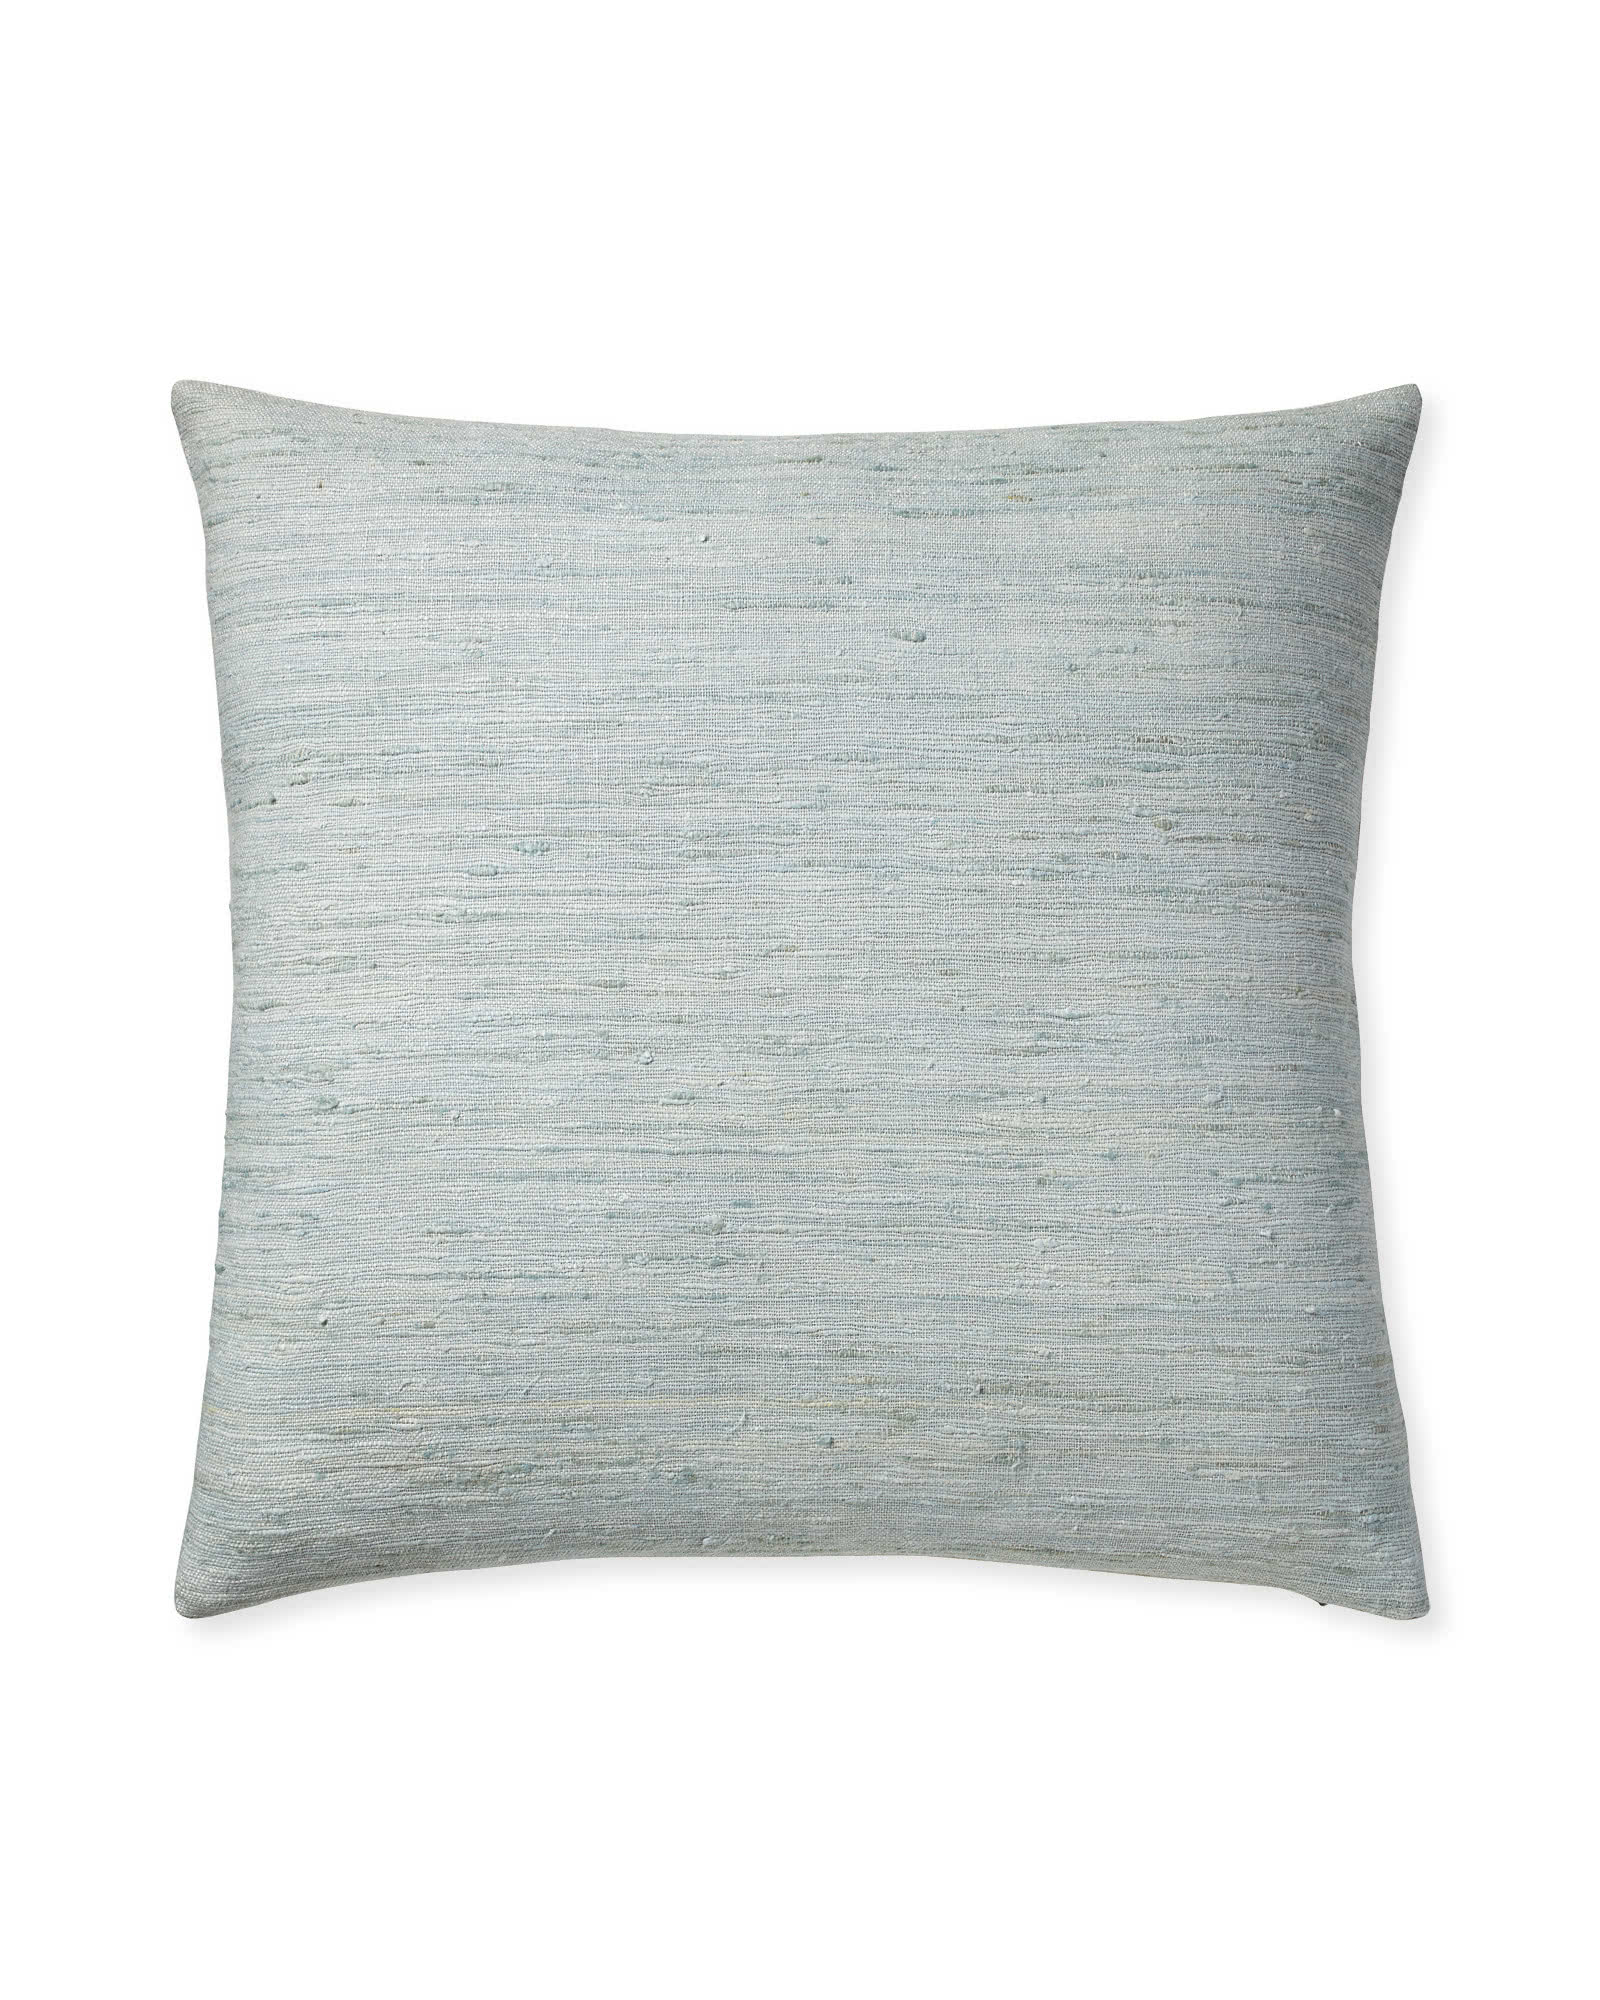 Provence Pillow Cover, Seaglass